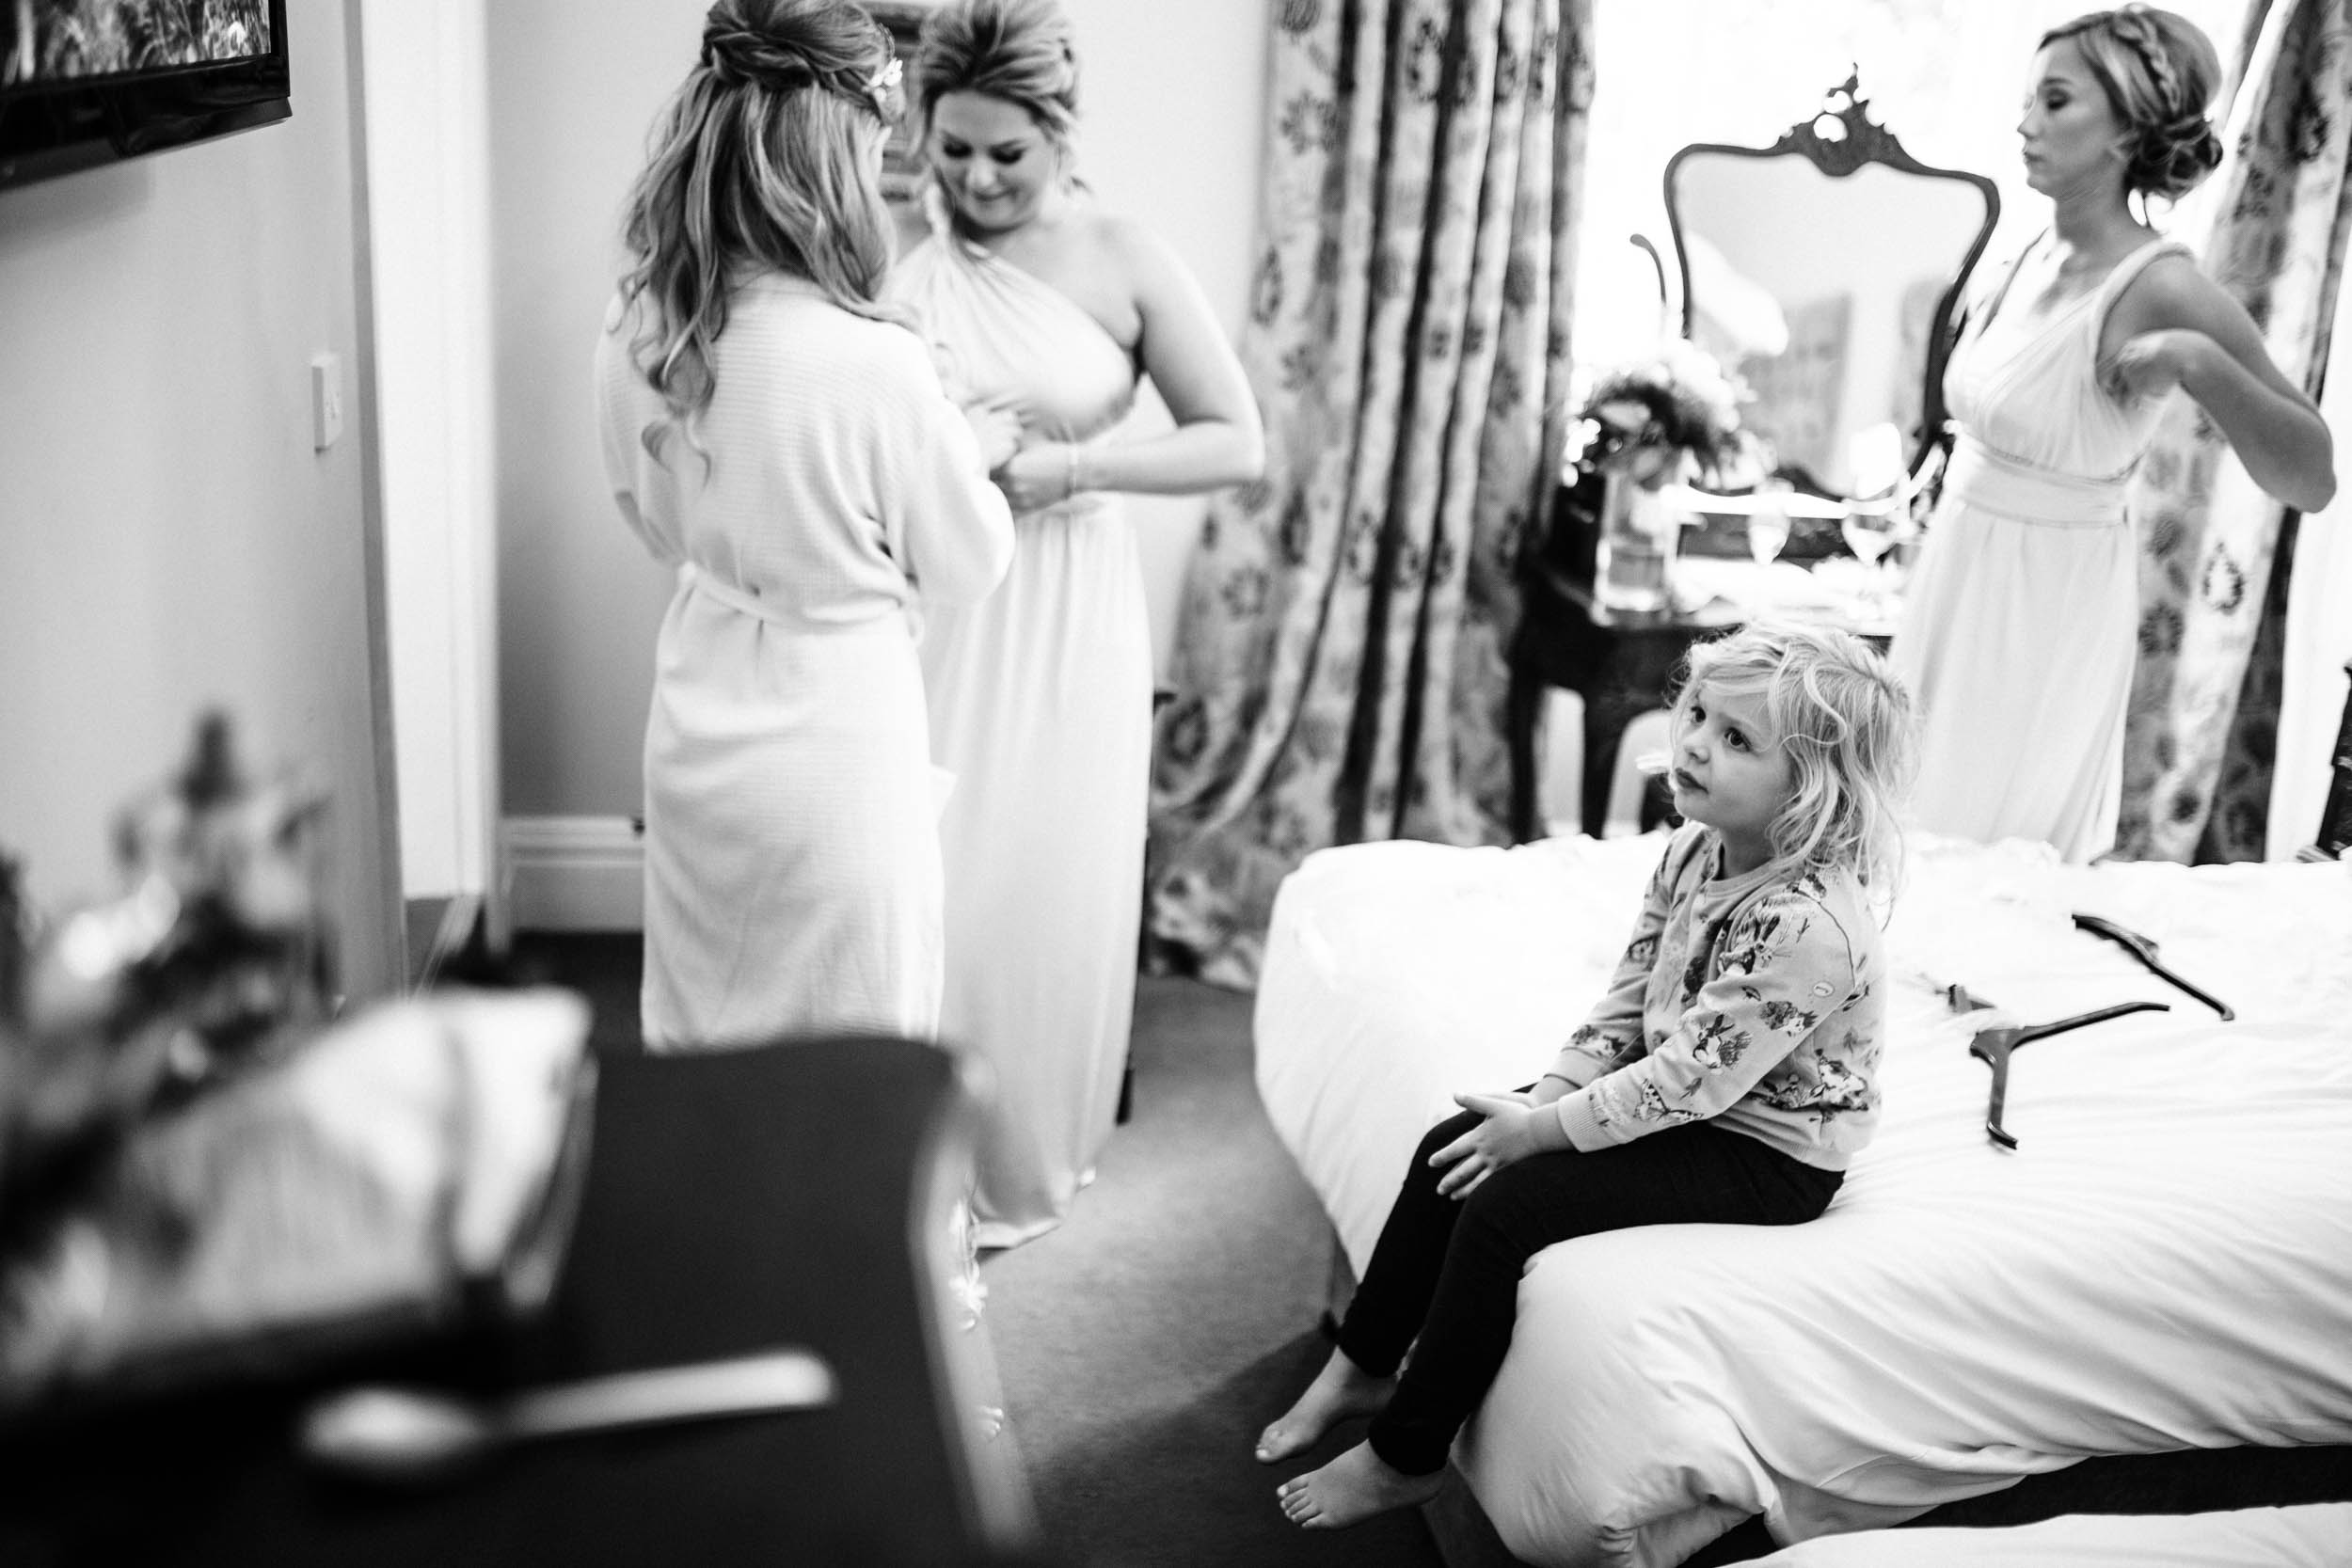 Alex_Sedgmond_Photography-SouthWalesWeddingPhotography-Wedding-Photographer-Cardiff-Chester-Pryors Hayes Golf Club-chesire-weddingphotography-fionaandvince-21.jpg